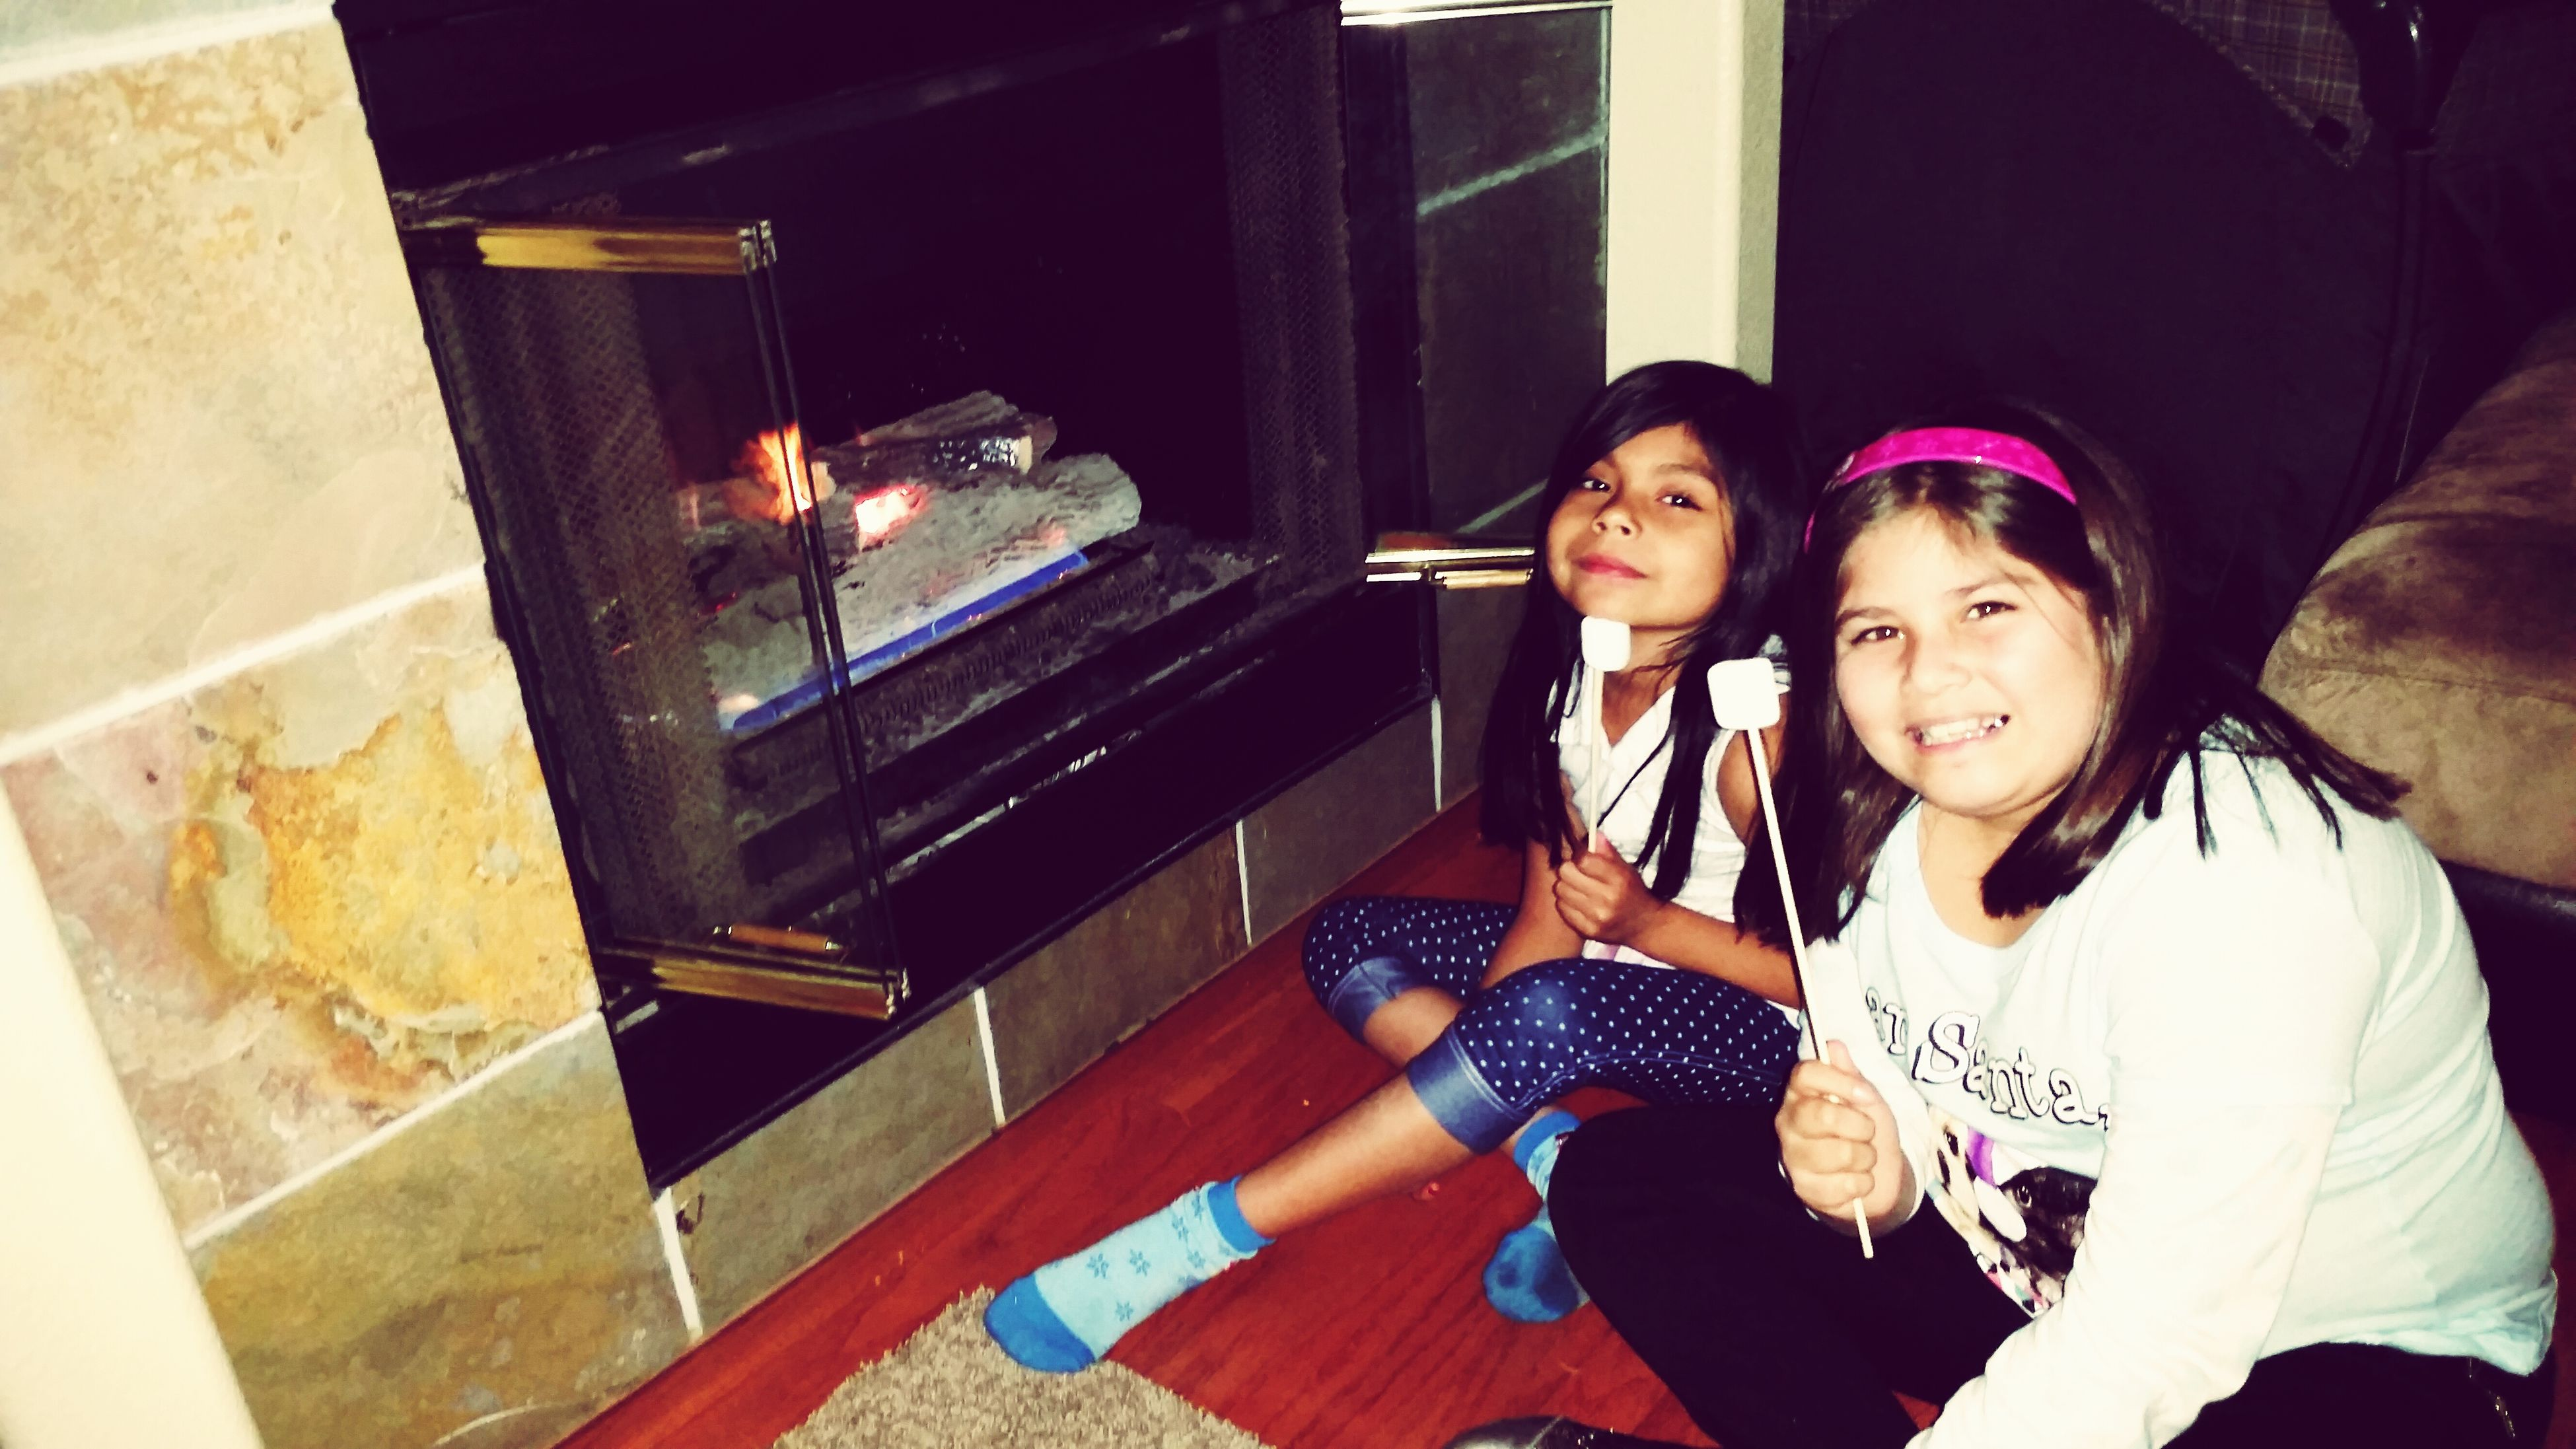 Making S'mores! HappyNewYear!